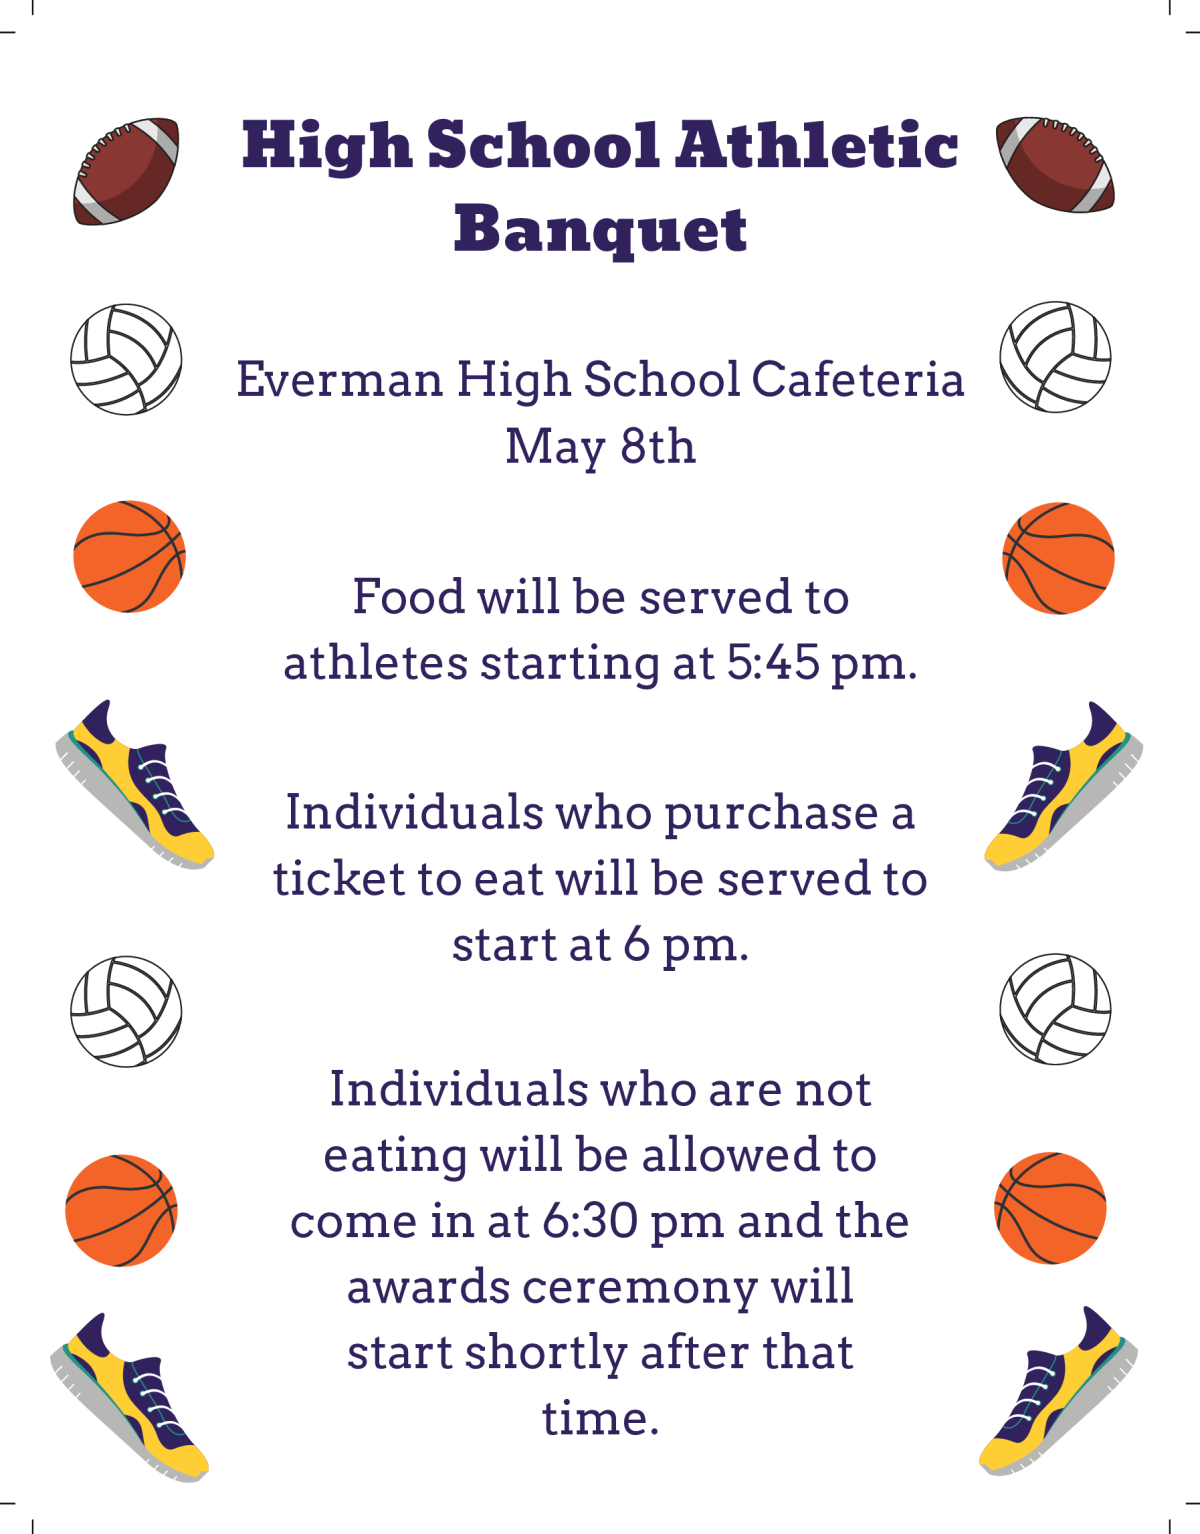 Image of a flyer titled High School Athletic Banquet